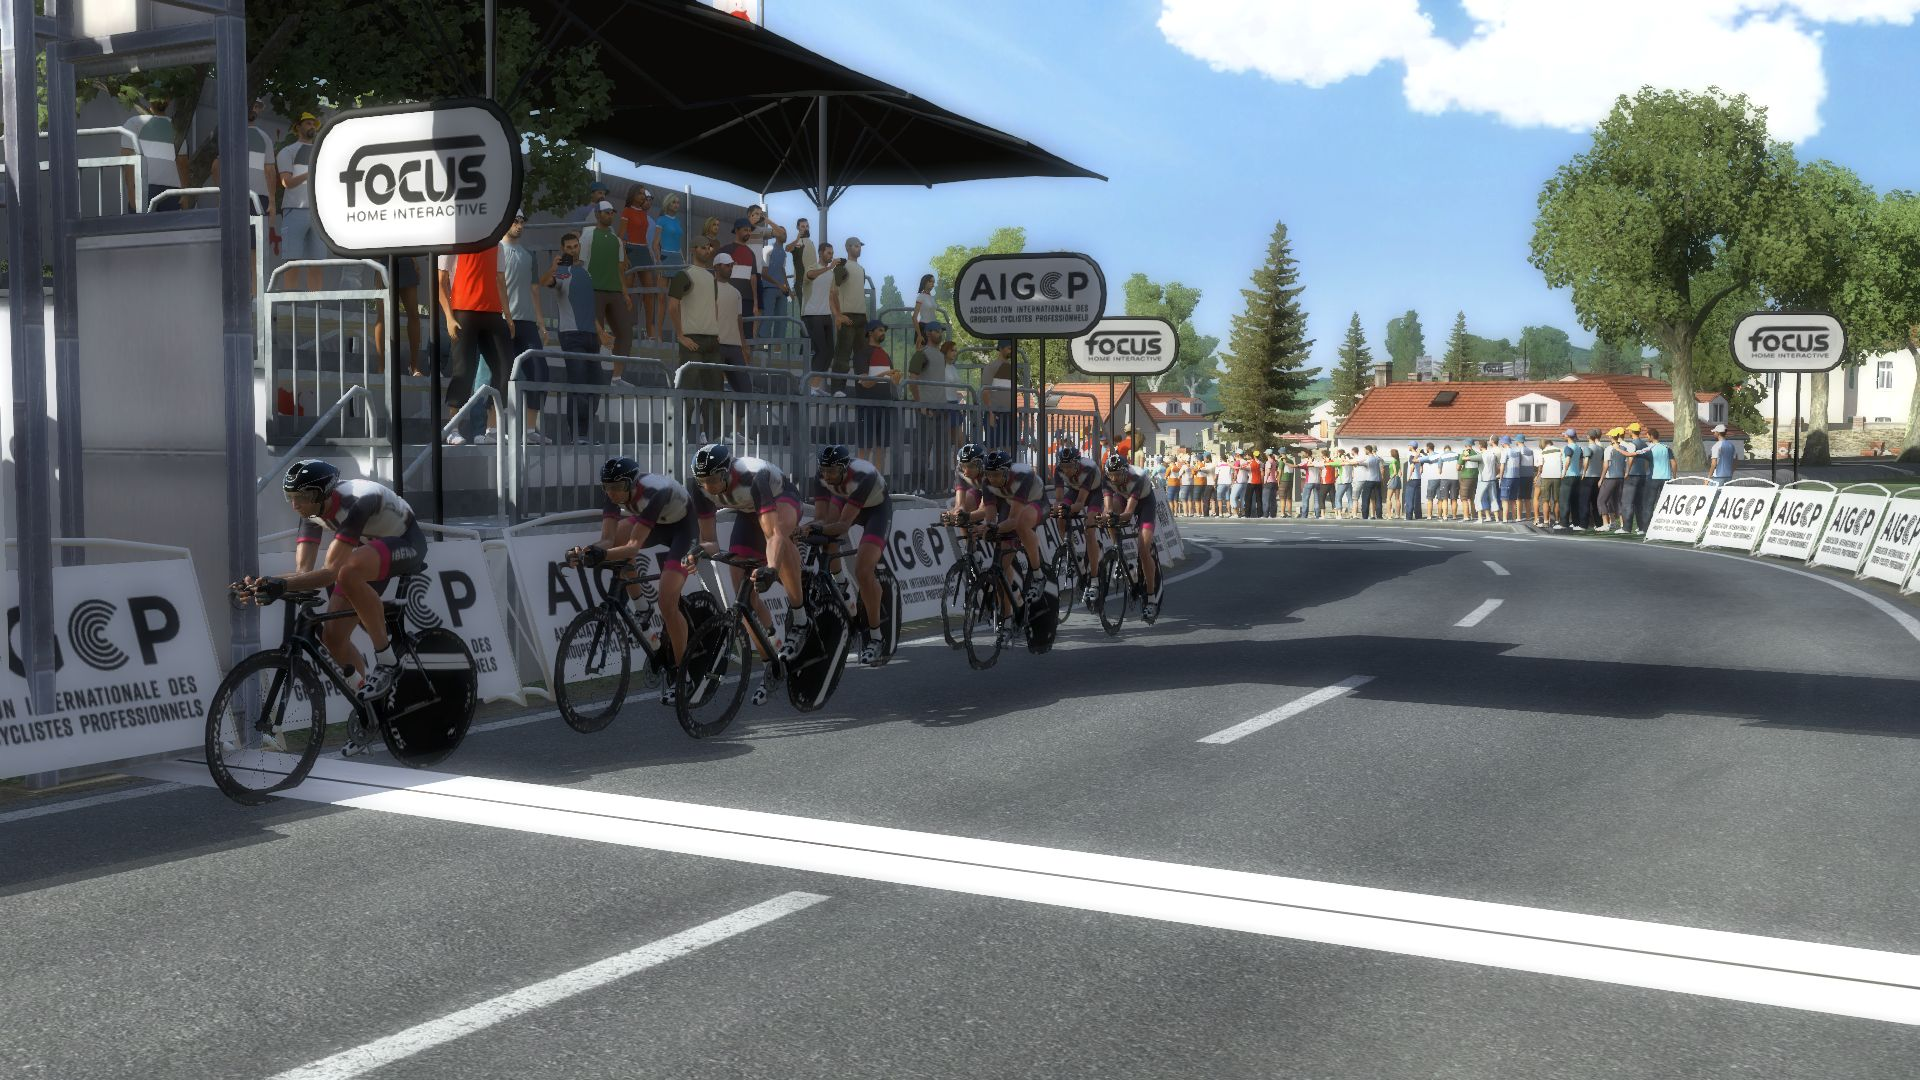 pcmdaily.com/images/mg/2019/Races/HC/Slovenie/mg19_slo_s01_15.jpg